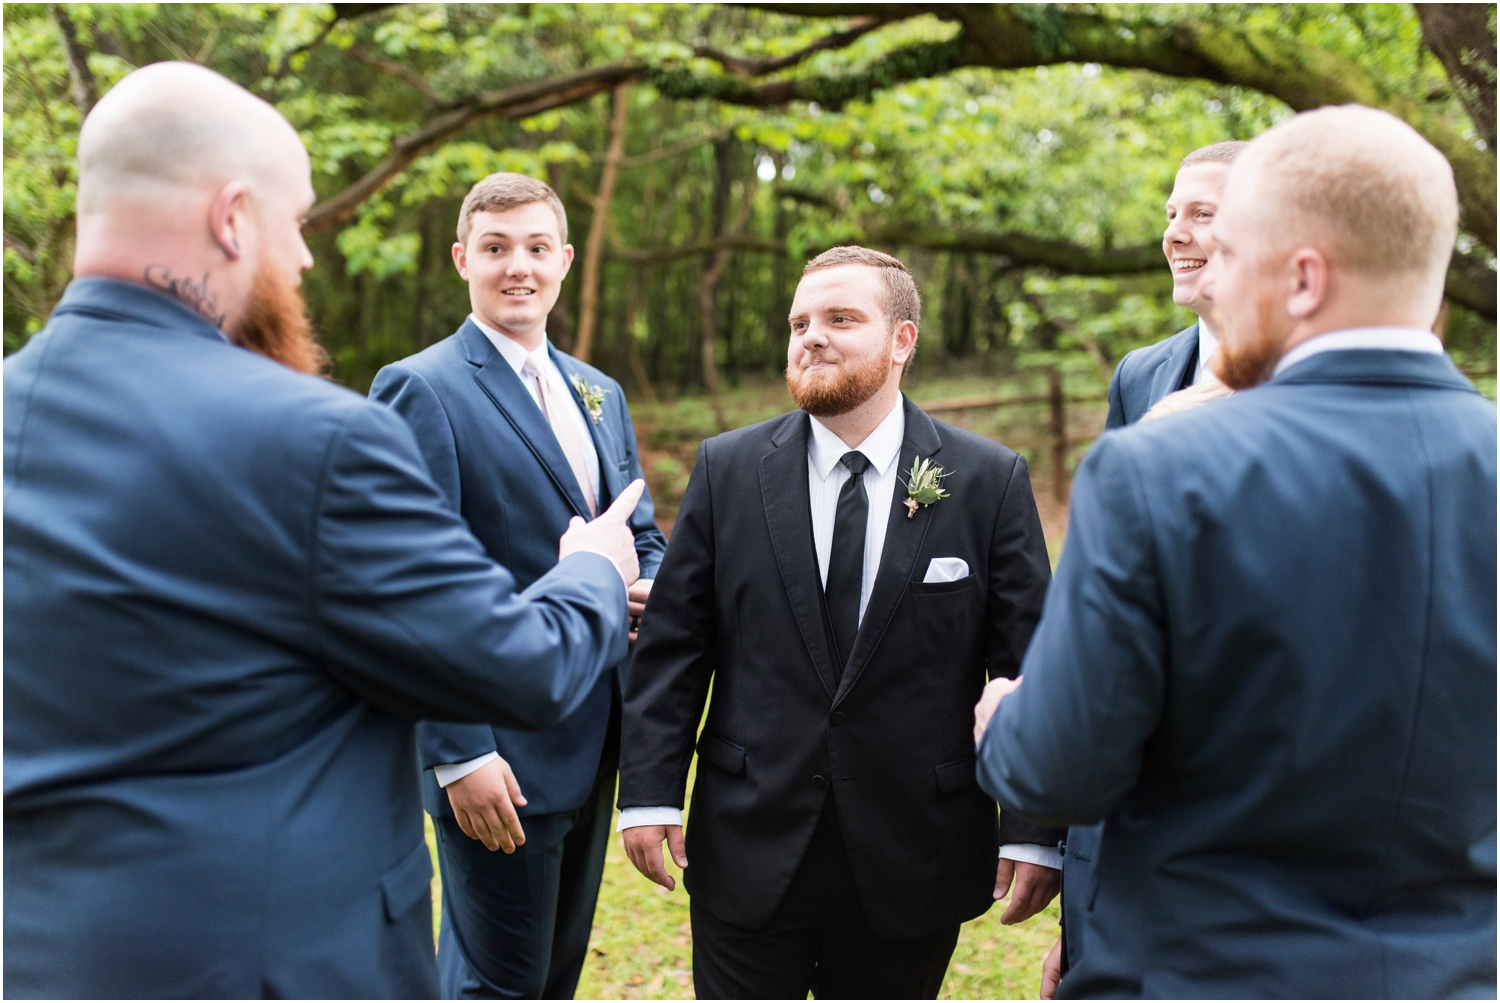 Live Oak Plantation Pensacola Florida Wedding Photographer wedding bridal party groomsmen